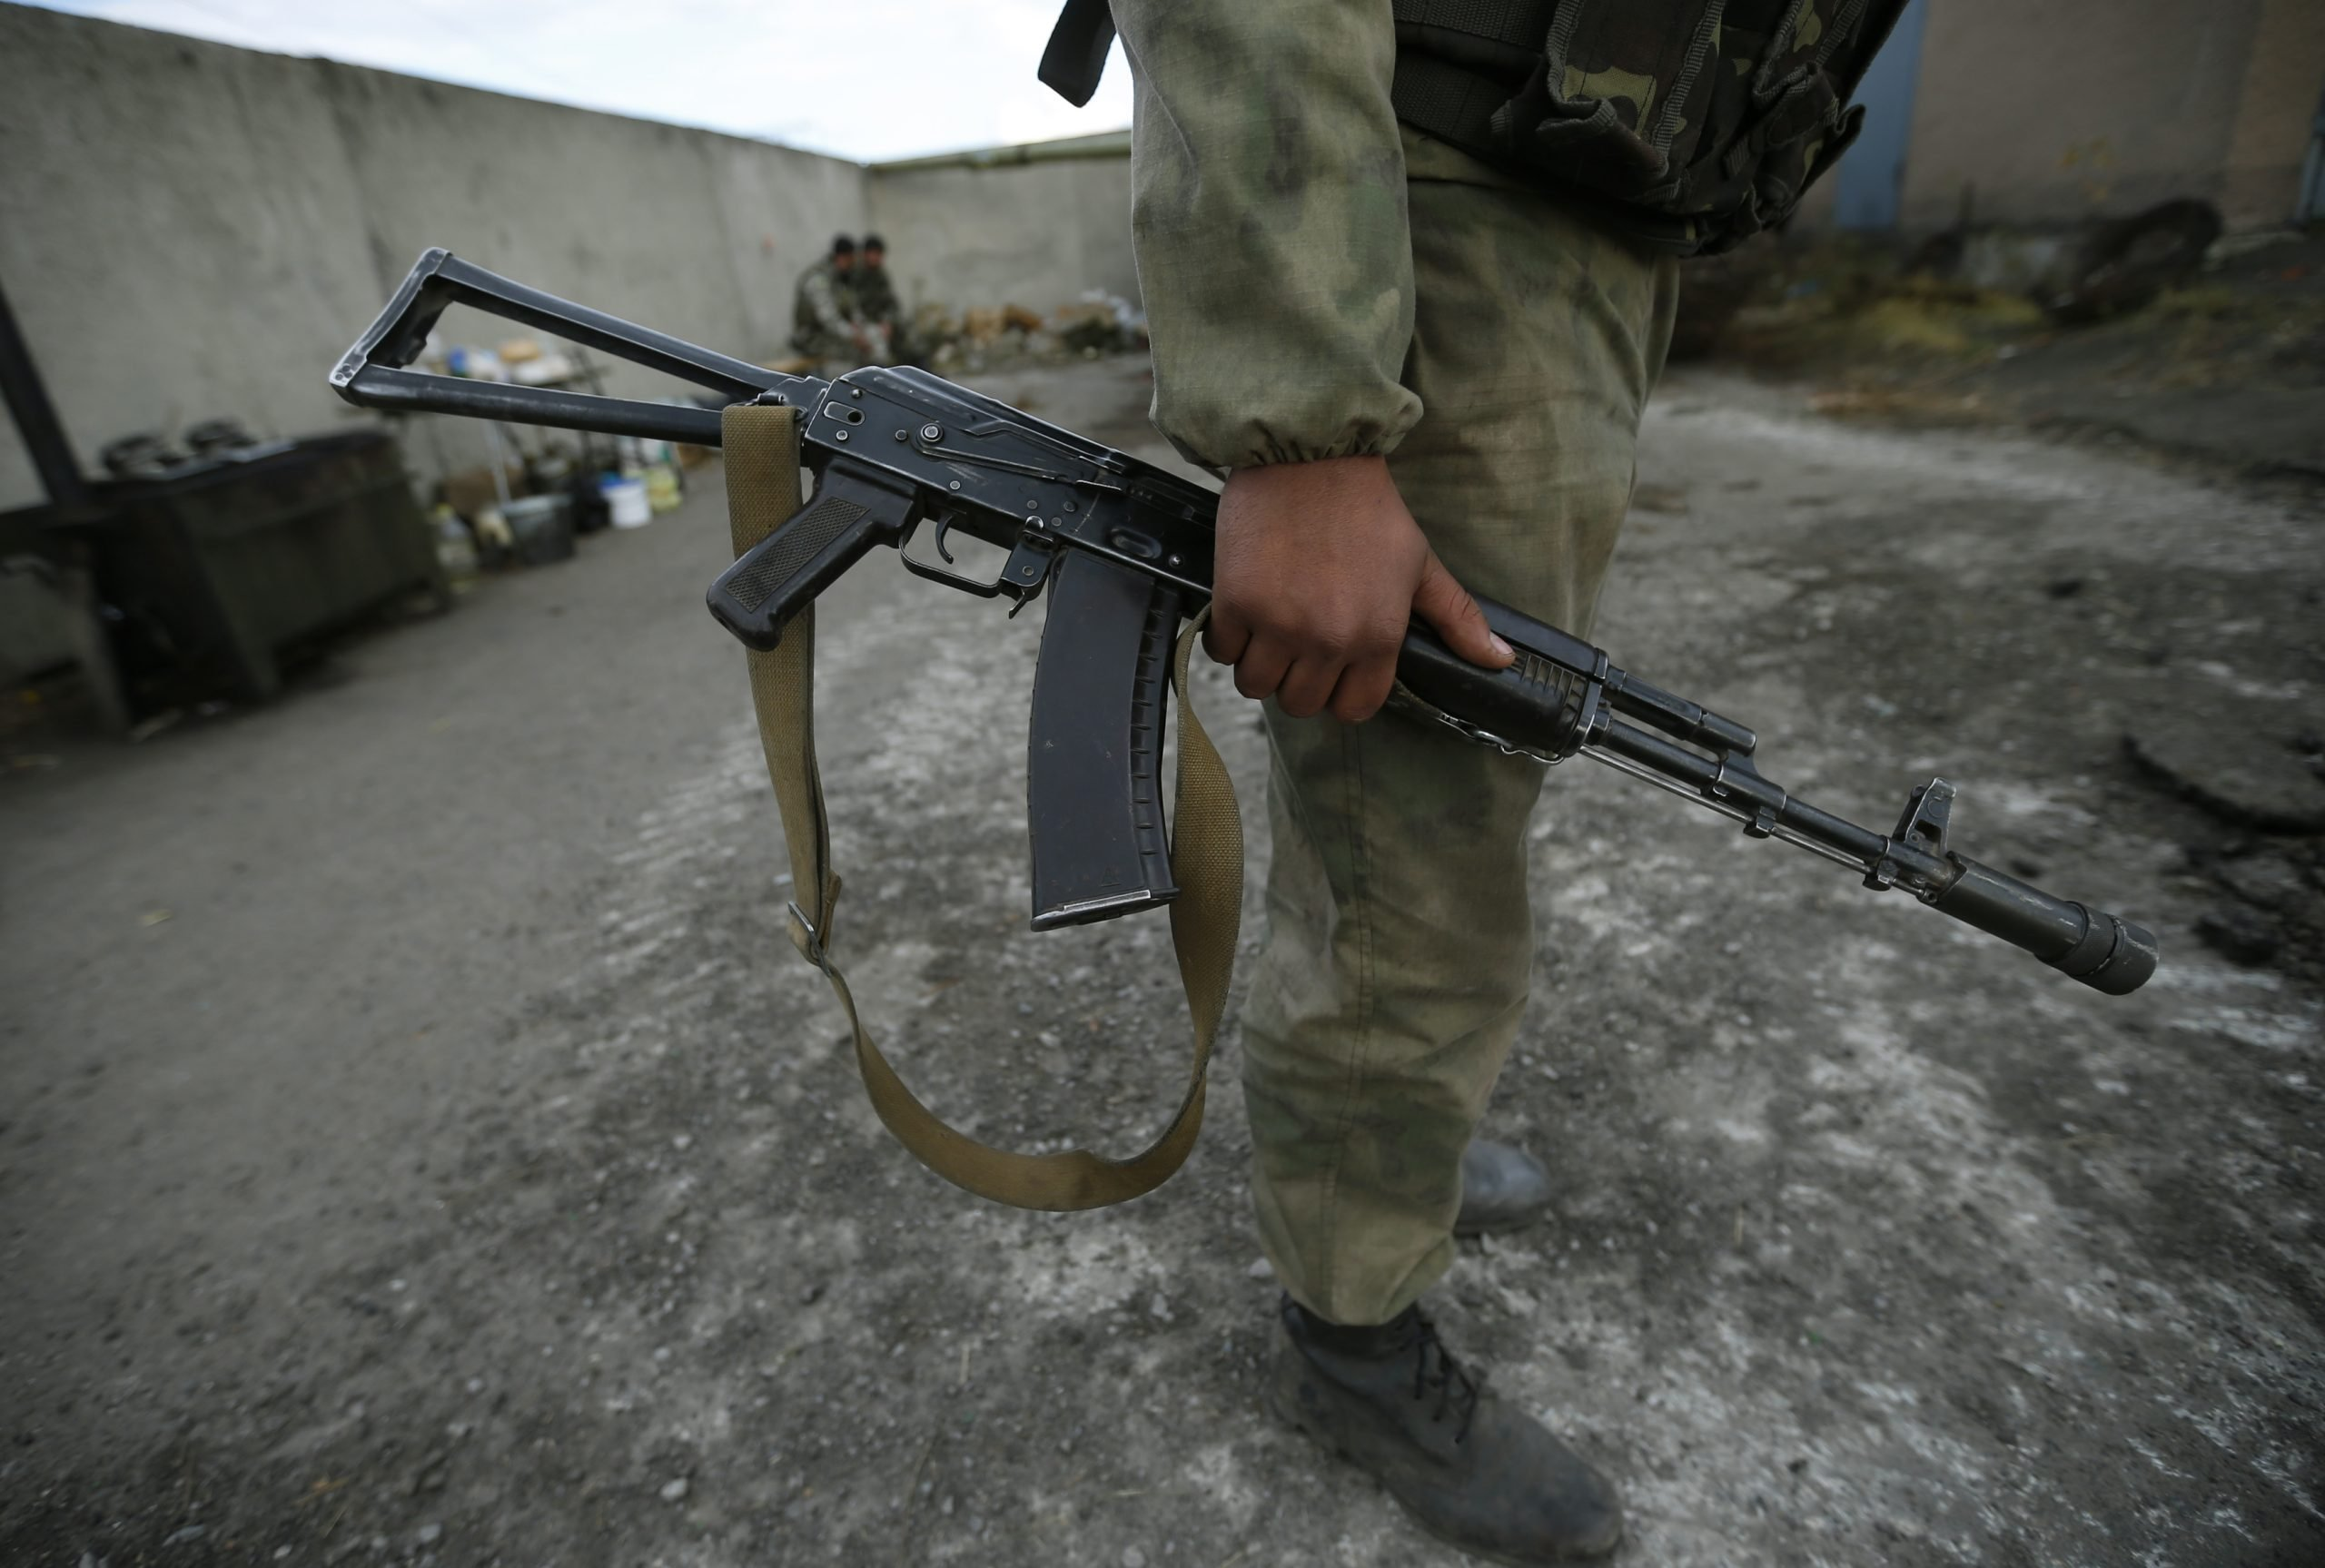 Punishers cancelled truce - DPR reports shelling